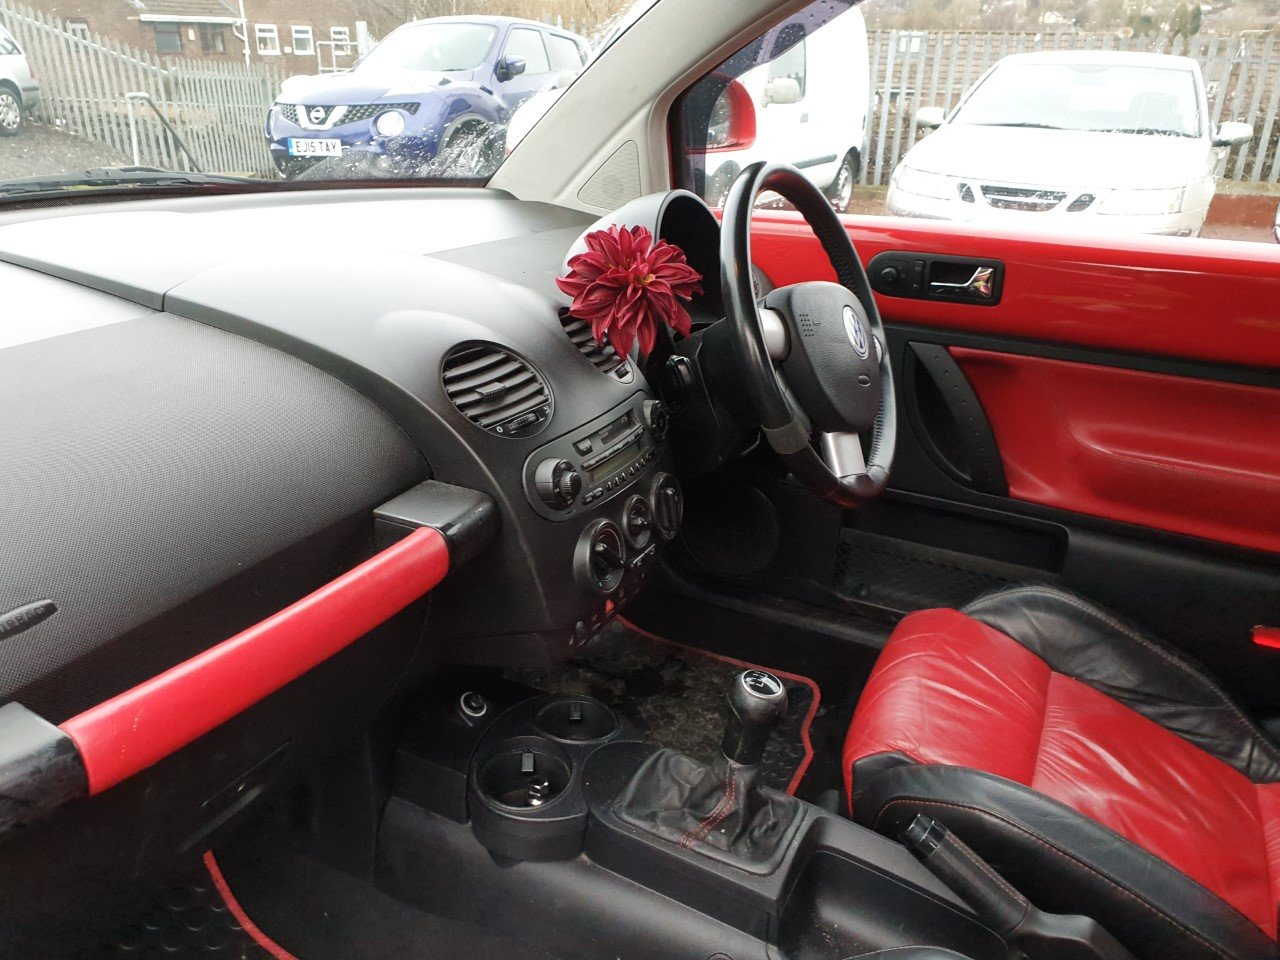 2002 Volkswagen Beetle V5 2.3 With full read and black leather. For Sale (picture 5 of 6)